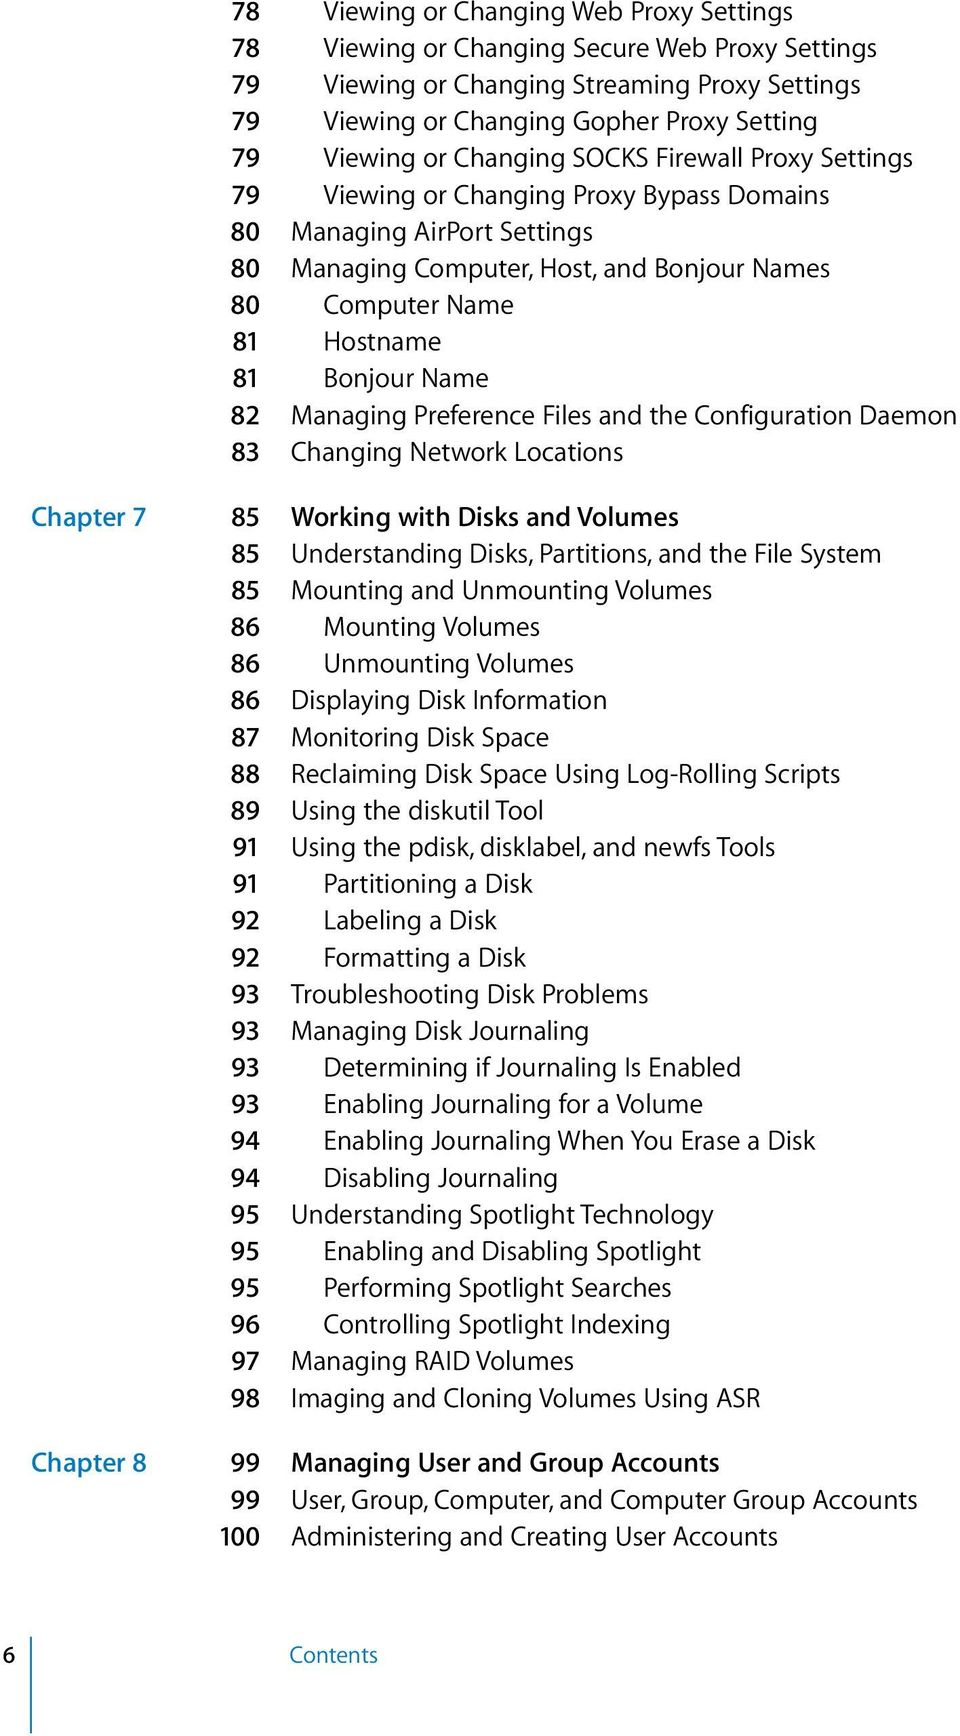 Name 82 Managing Preference Files and the Configuration Daemon 83 Changing Network Locations Chapter 7 85 Working with Disks and Volumes 85 Understanding Disks, Partitions, and the File System 85